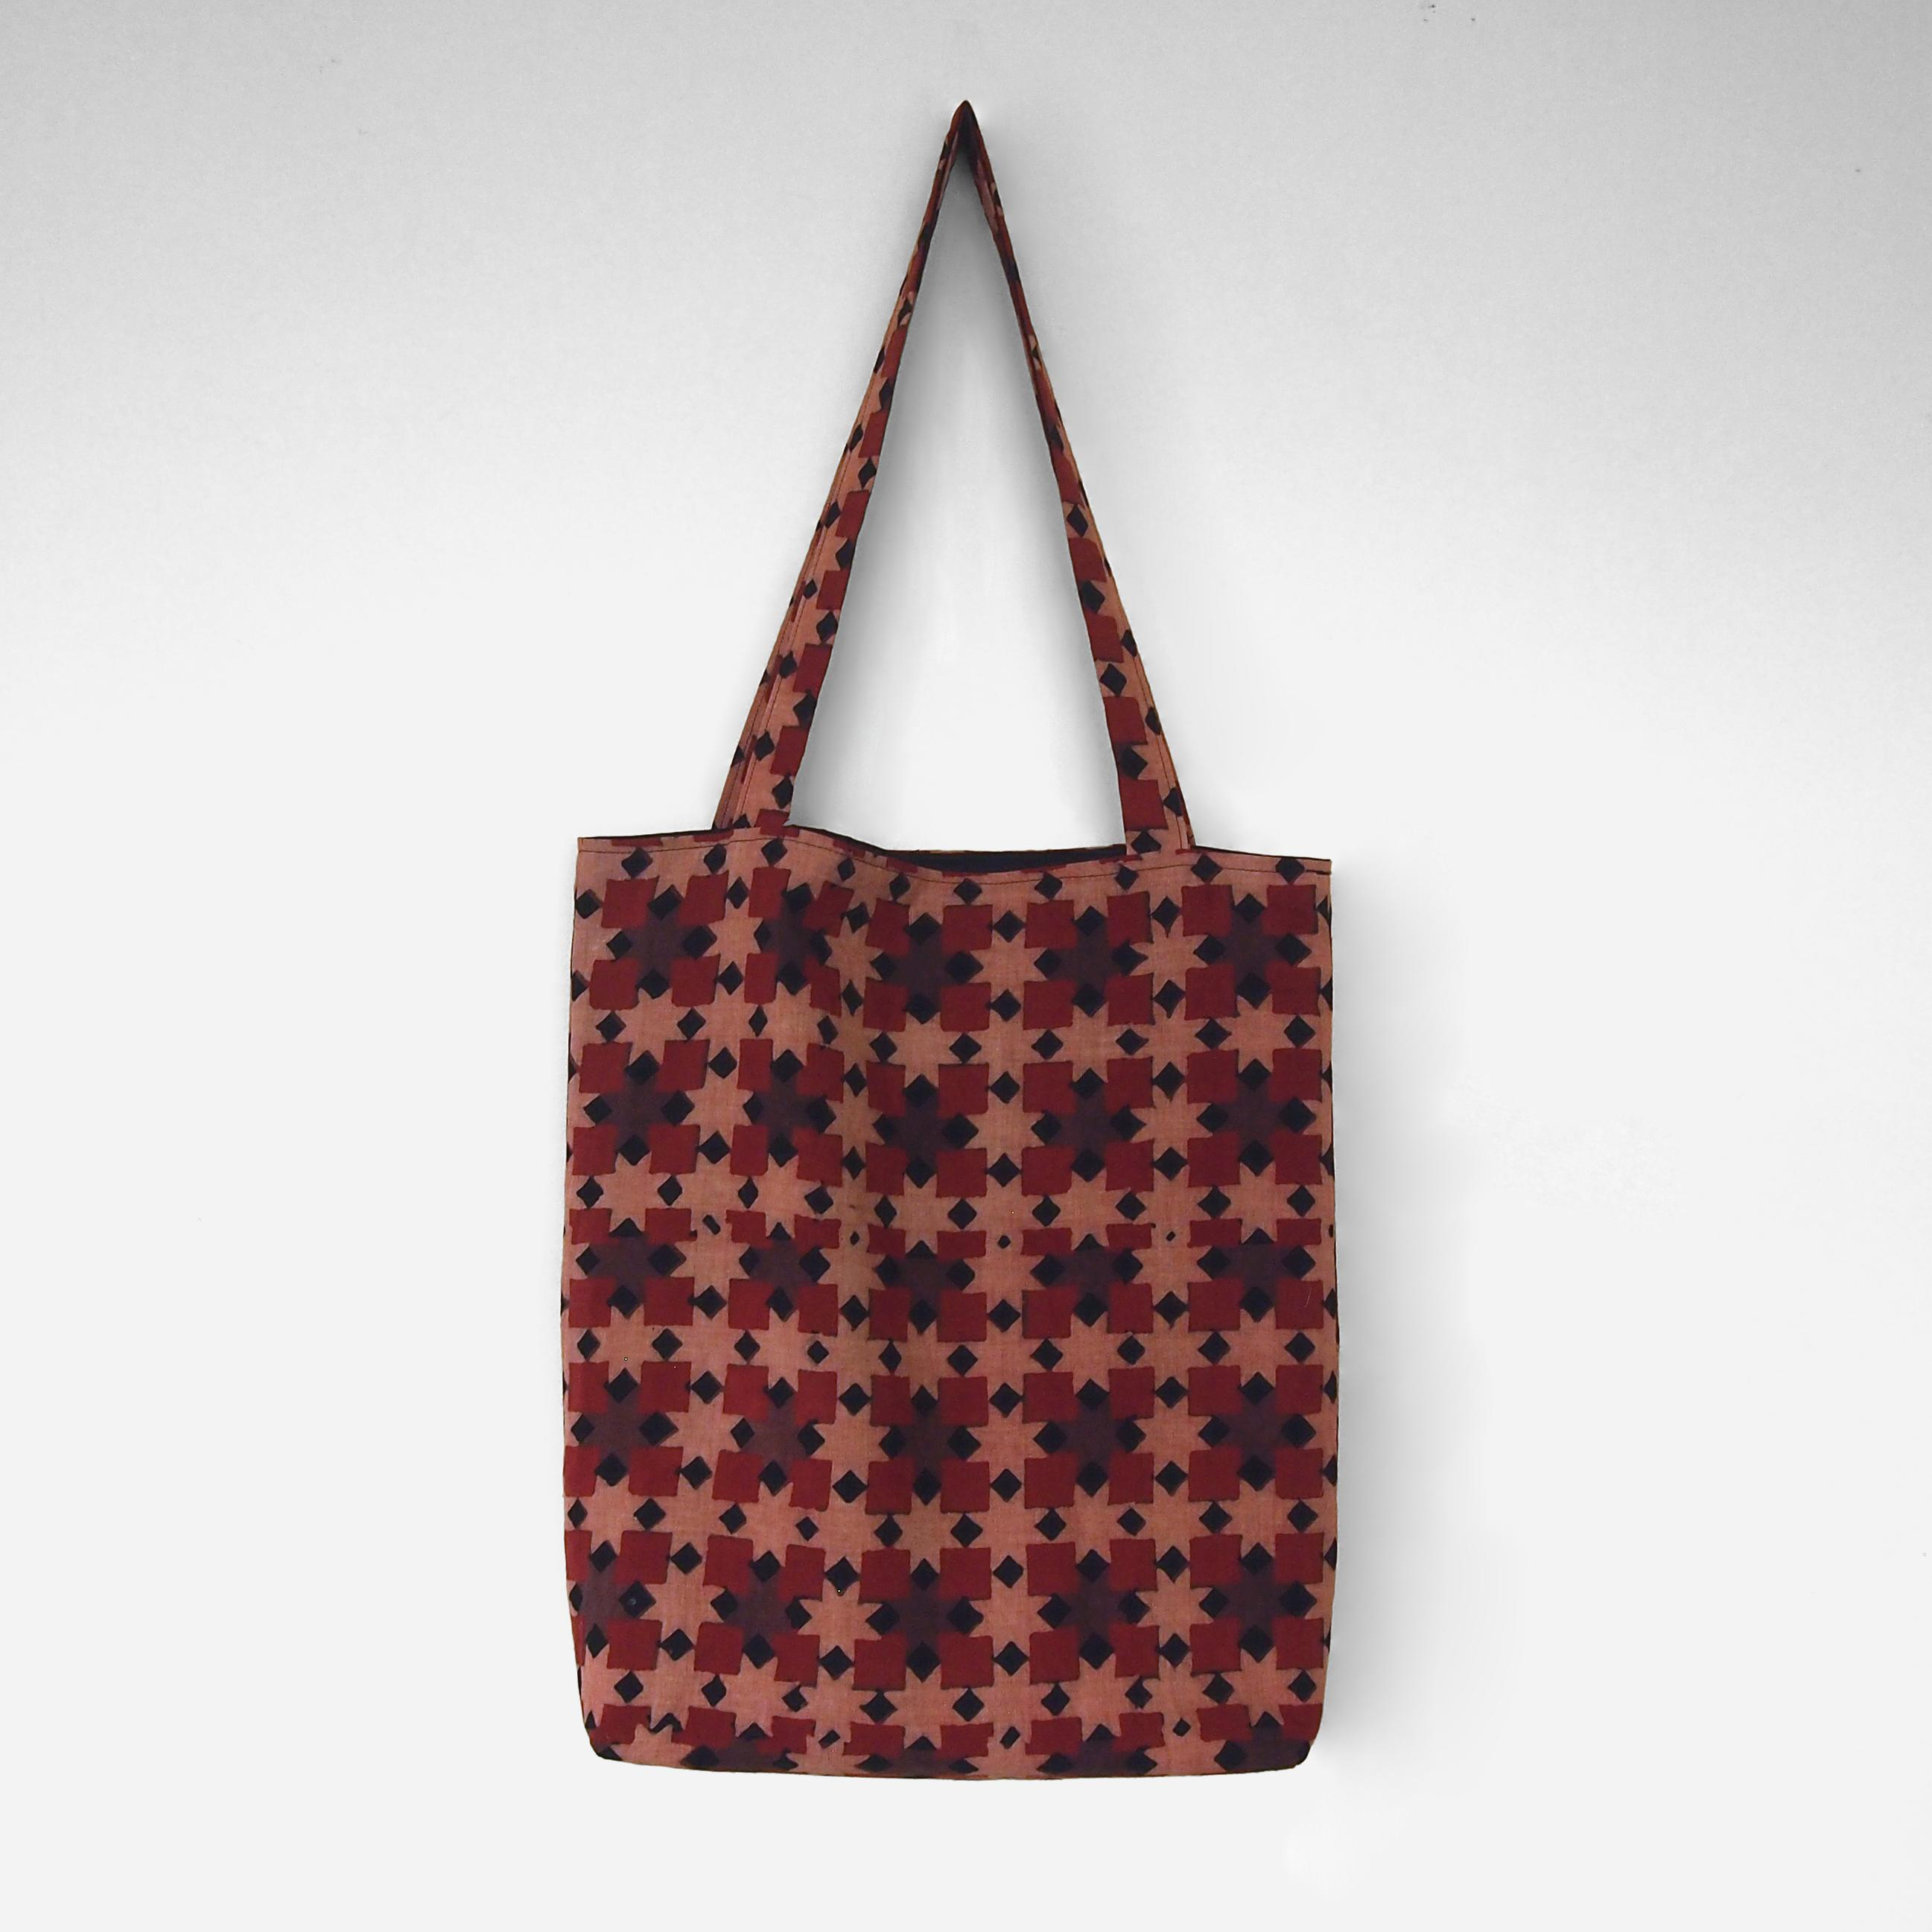 block printed cotton tote bag, pink, red ochre black square design, natural dye, lined with black cotton, closed